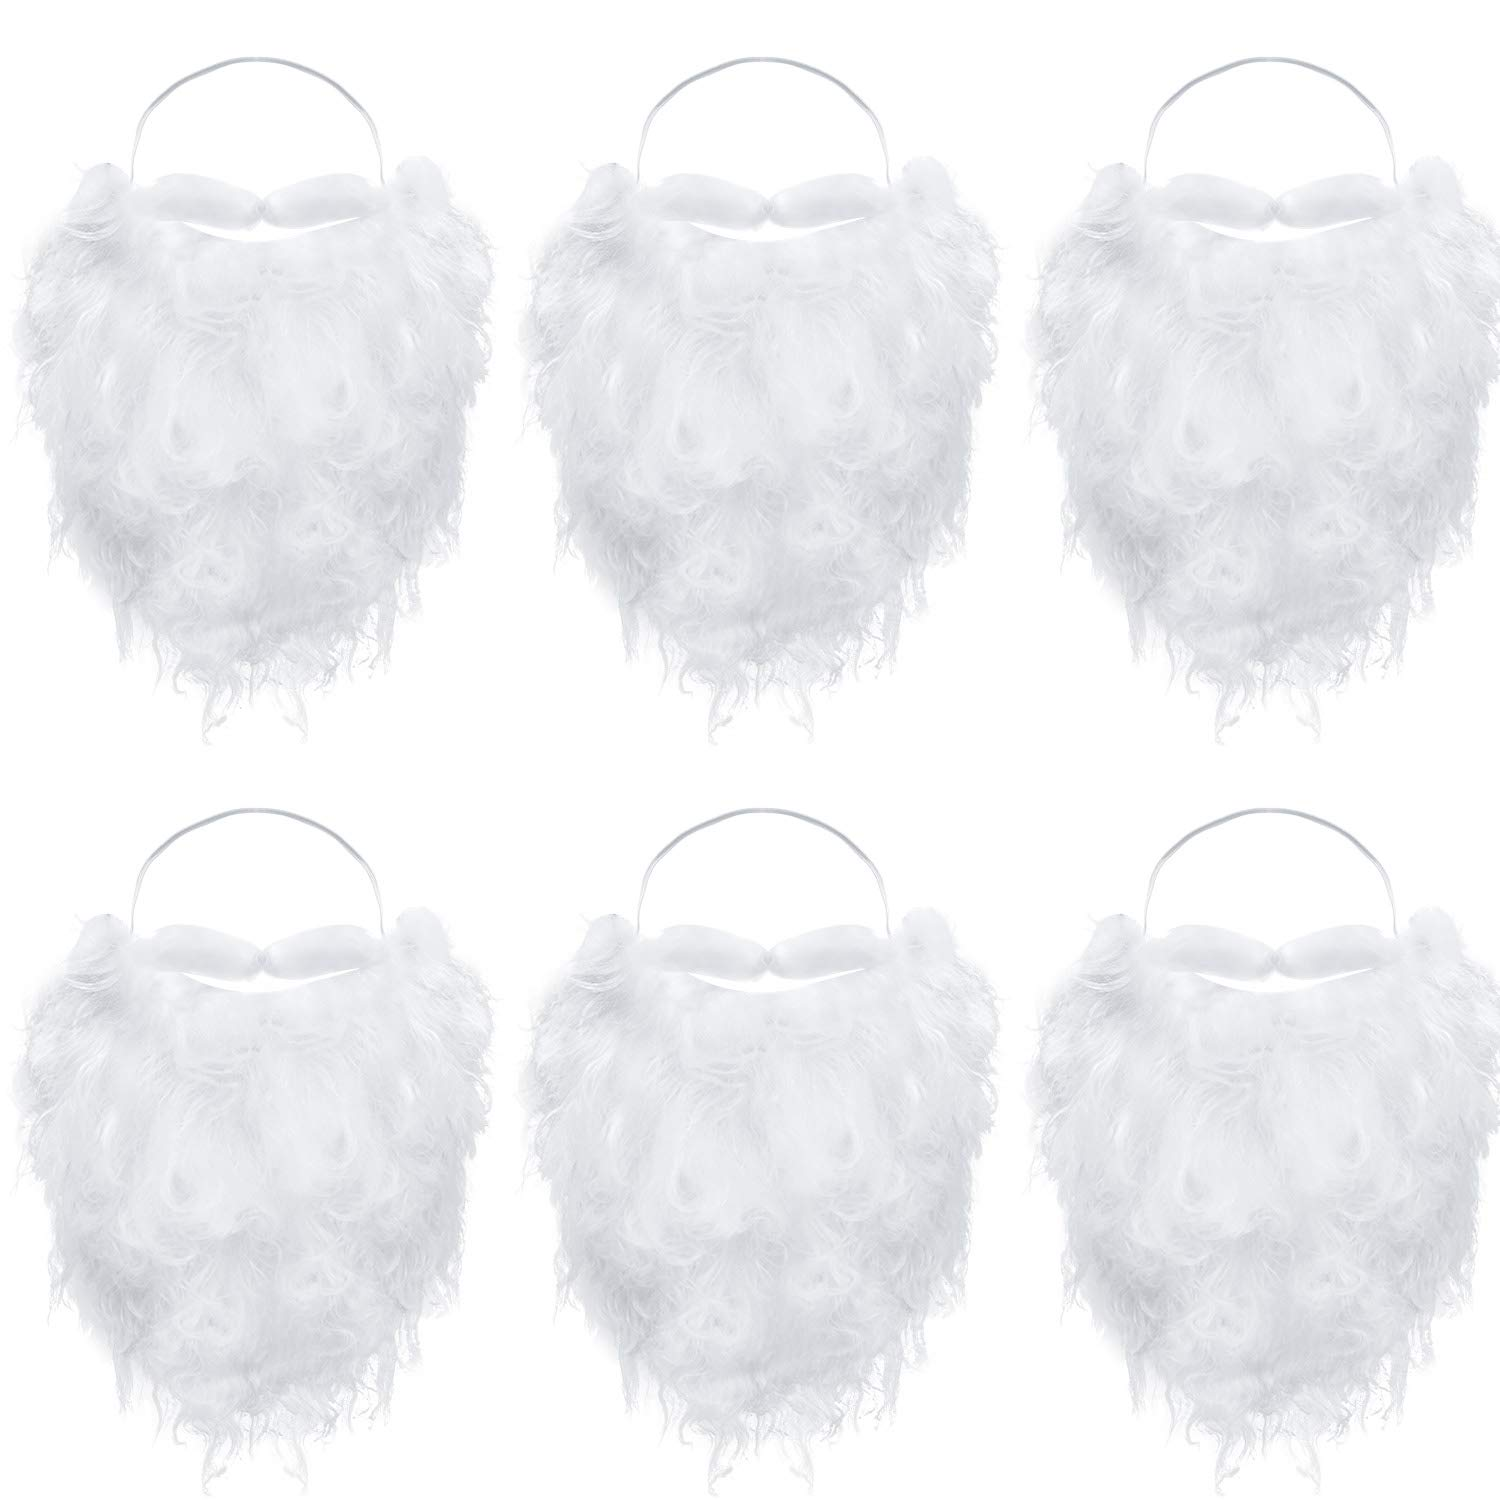 6 Pieces Funny Santa Beard Costume White Fake Beard Christmas Santa Claus Beard Costume Accessories for Teens Adults Disguise Santa Claus on Christmas Party